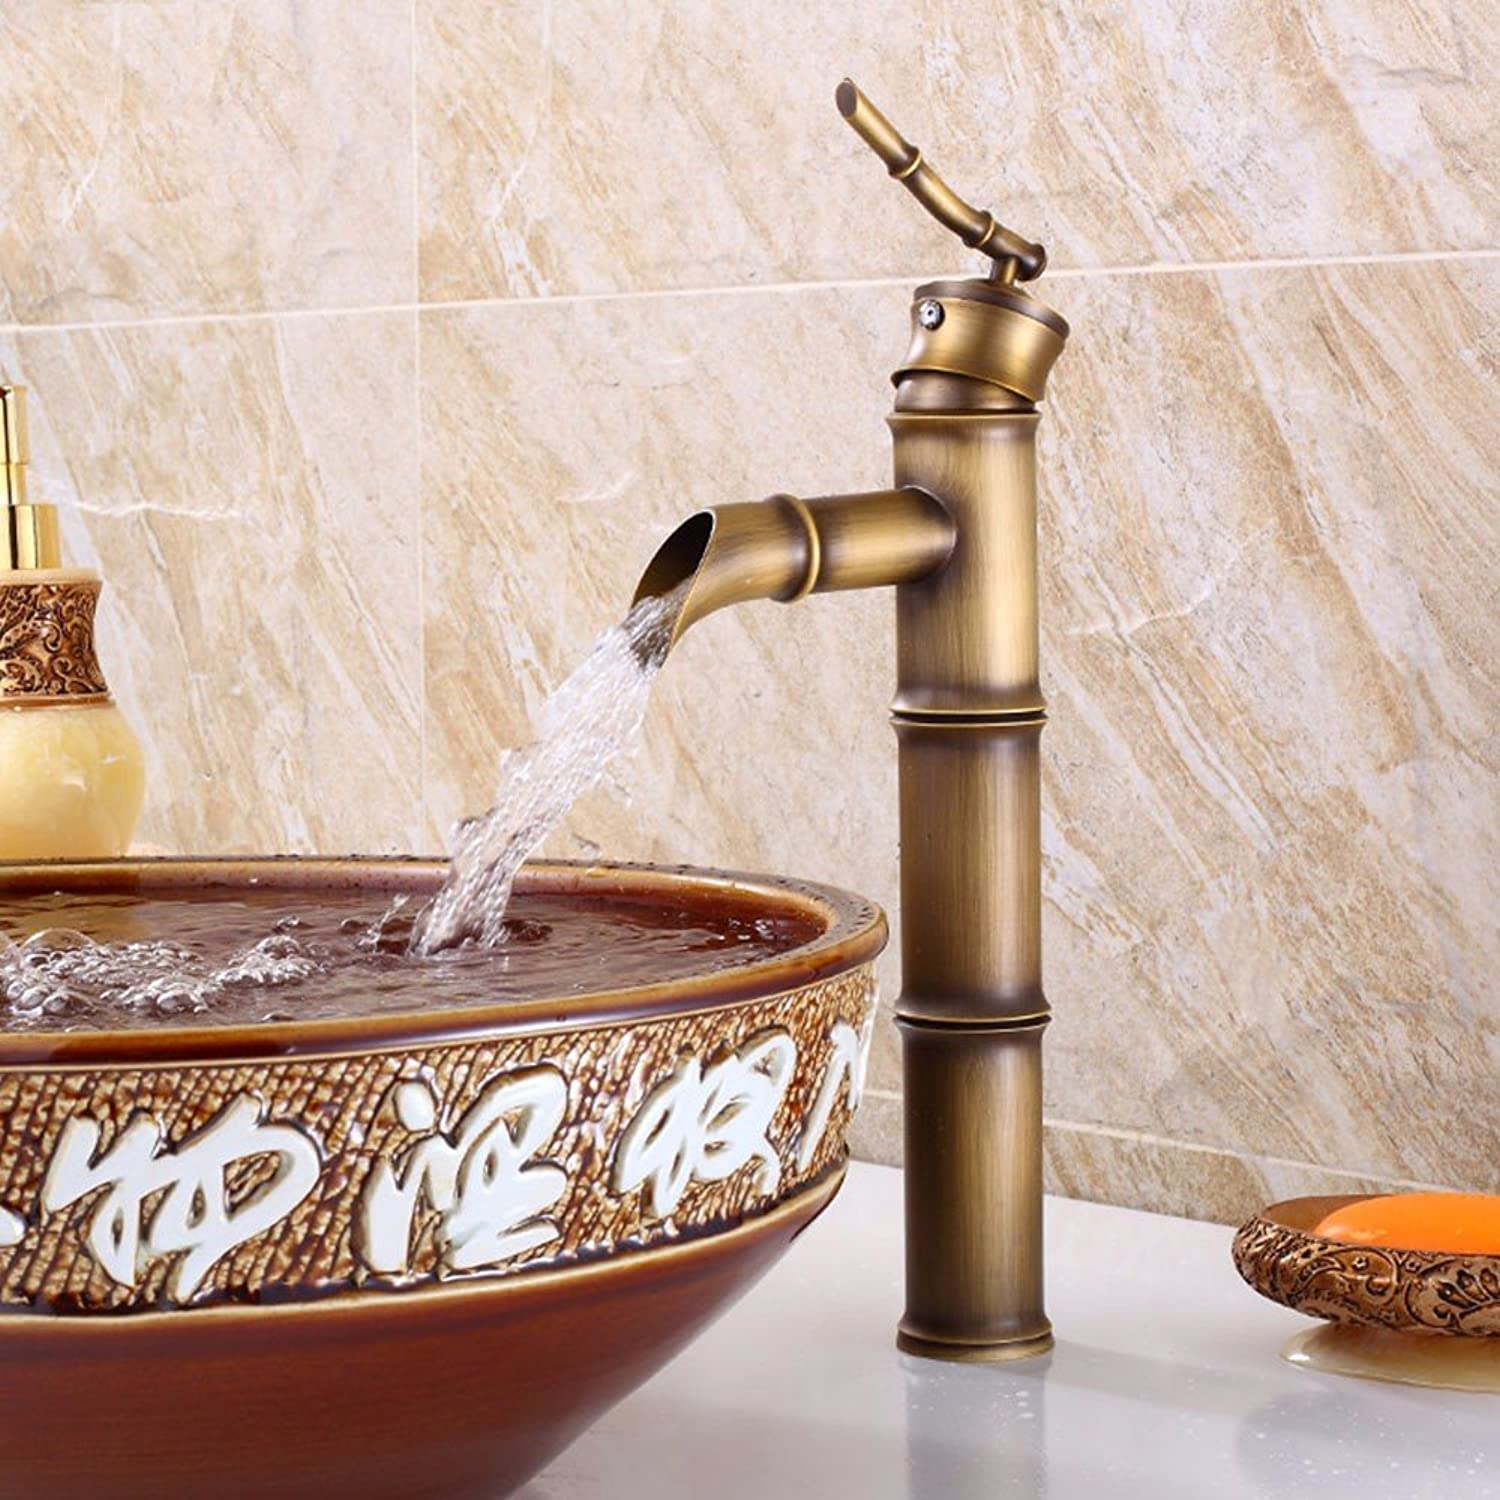 Hlluya Professional Sink Mixer Tap Kitchen Faucet Bamboo hot and cold, full of copper, wash basins, plus high, Single Handle faucet, of 34  15cm